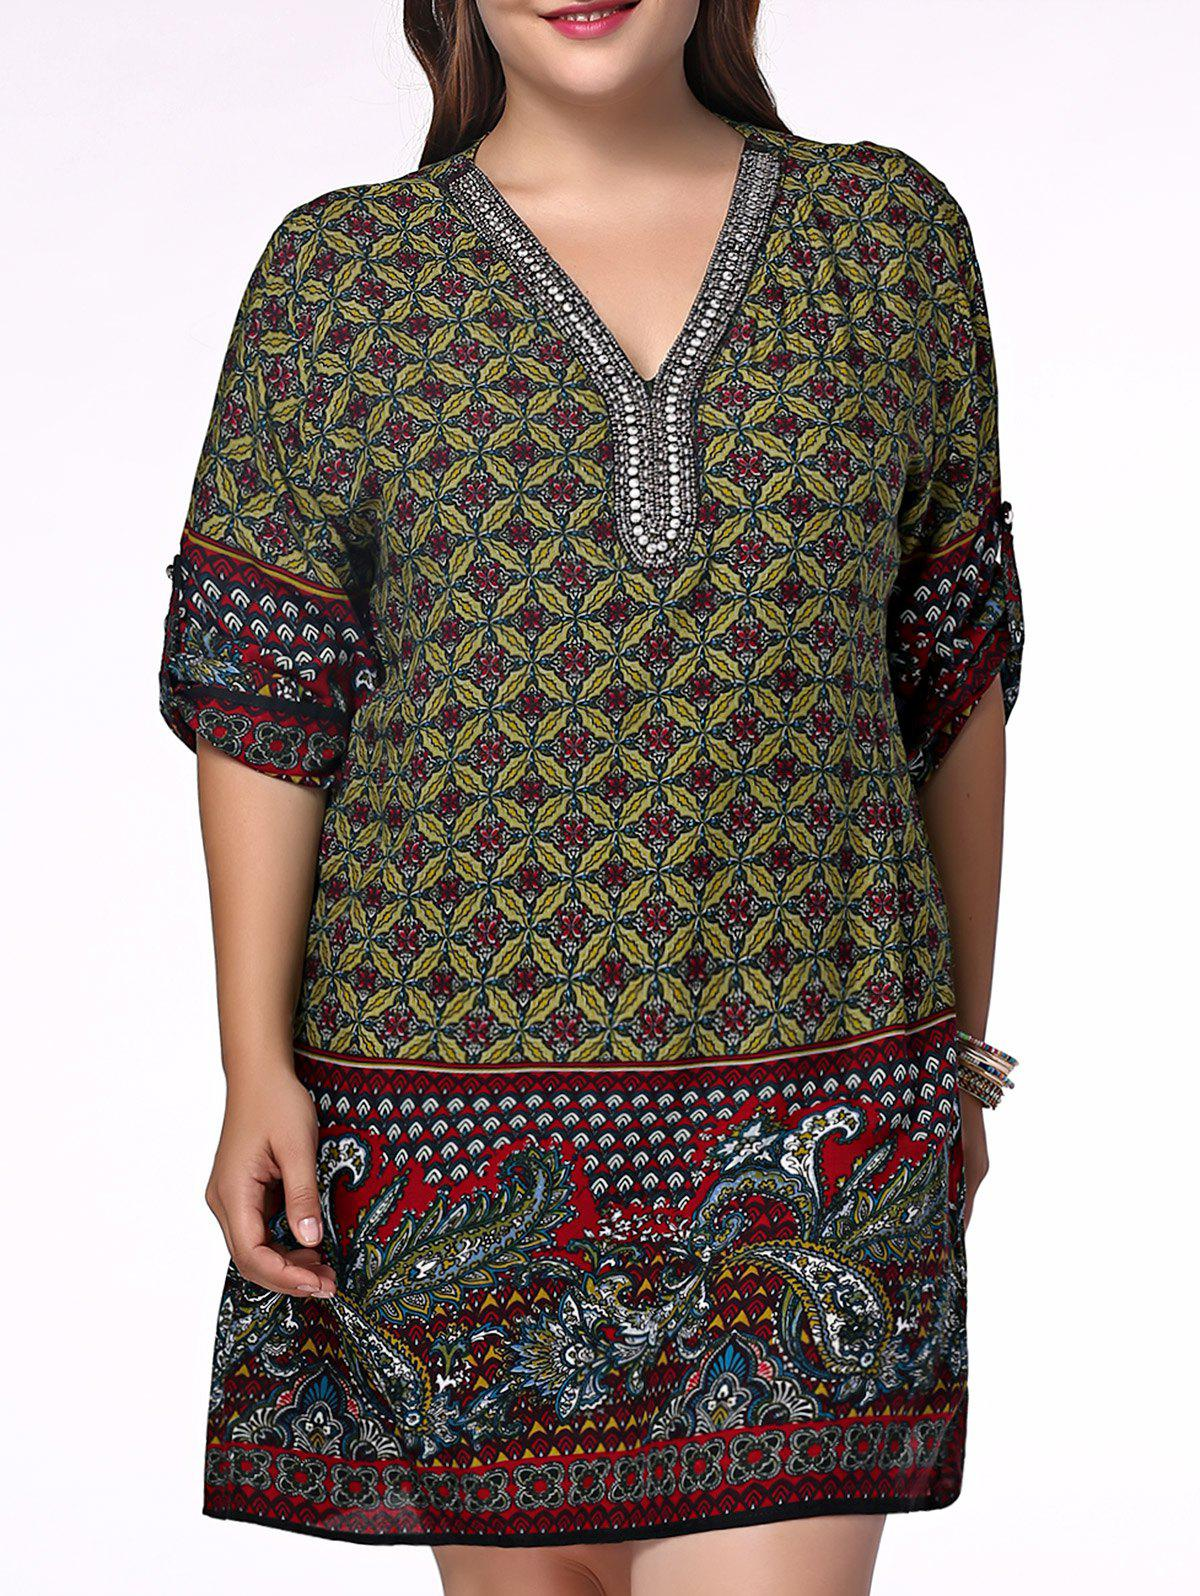 Ethnic Plus Size V Neck Rhinestoned Floral Print Women's Blouse - OLIVE GREEN 2XL